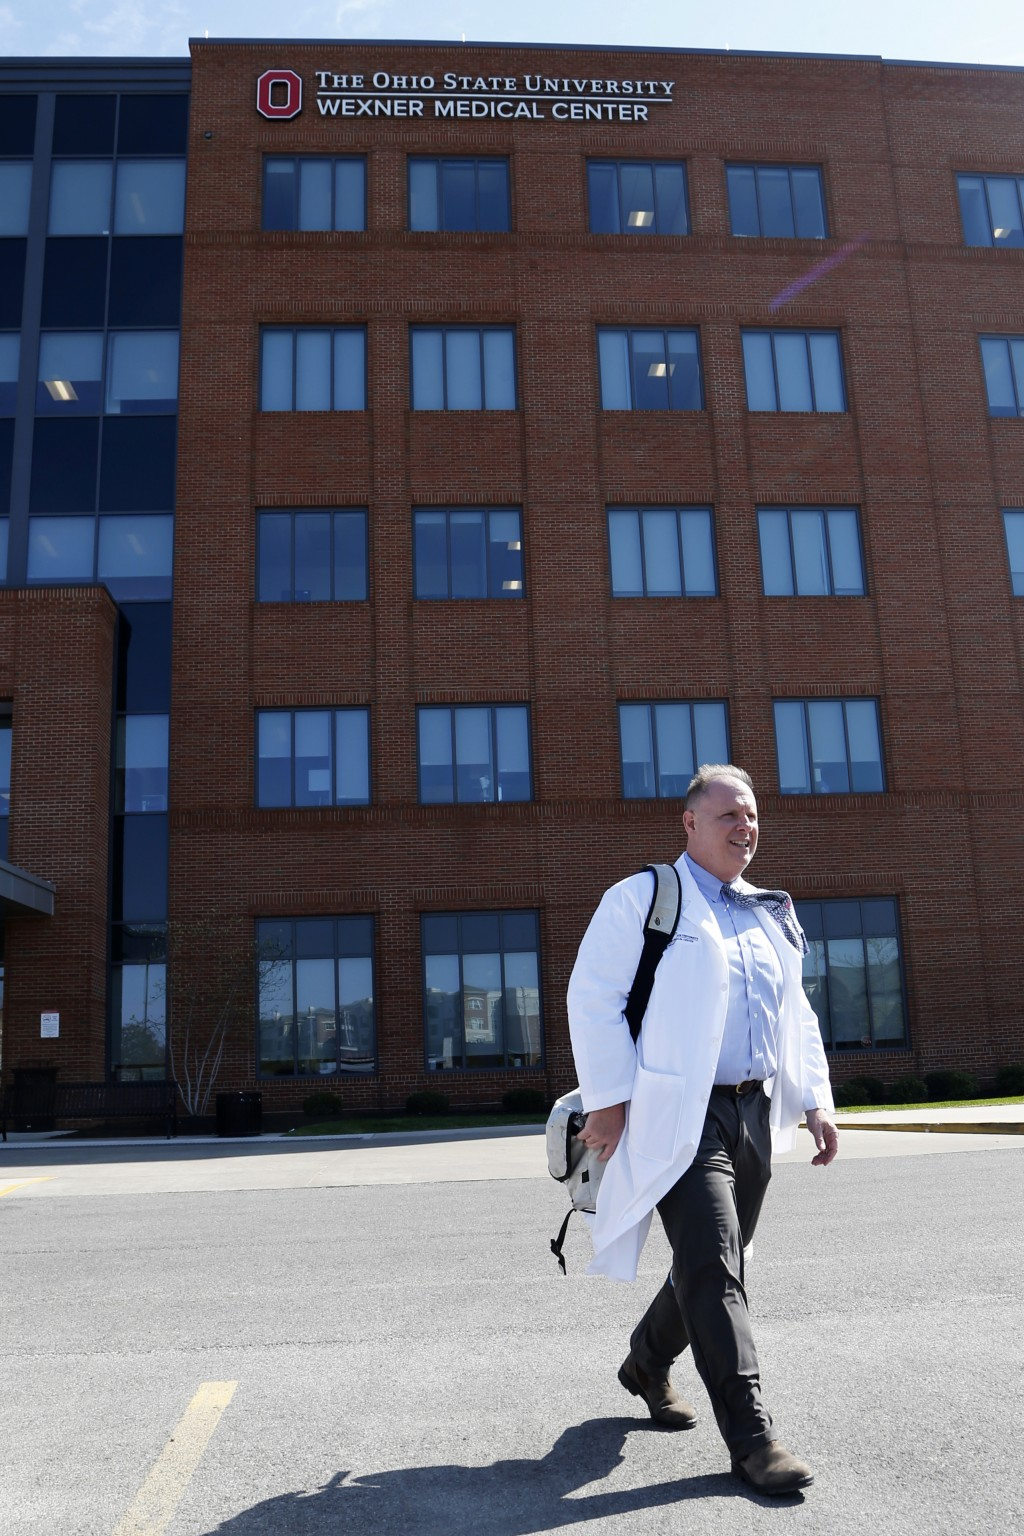 Dr. Michael Cackovic, an OB/GYN who works at Ohio State University's Wexner Medical Center, walks through the parking lot of the Ohio State Outpatient...